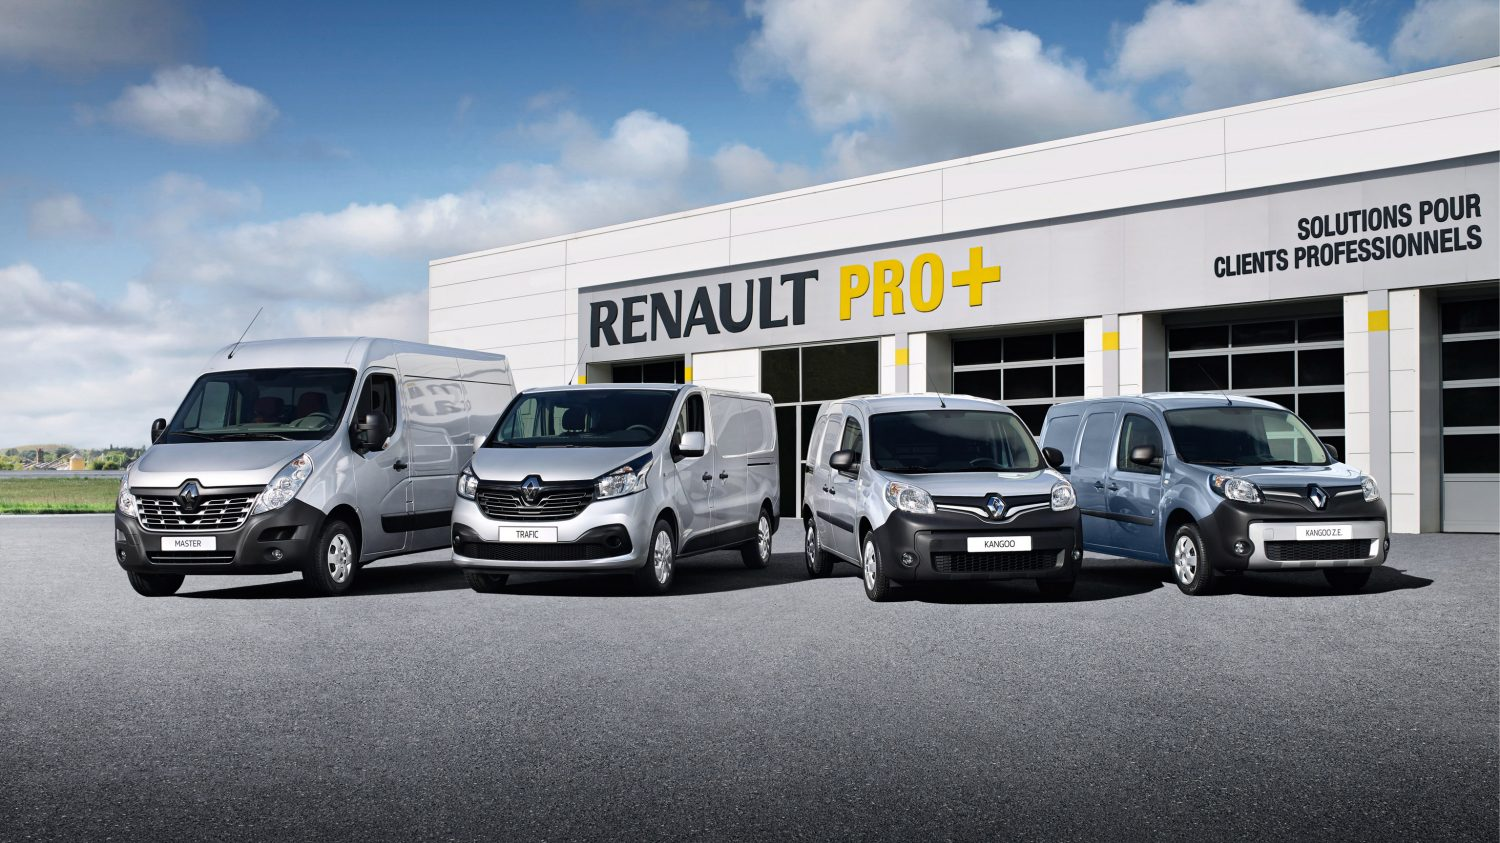 renault-pro-plus-network.jpg.ximg.l_full_m.smart.jpg